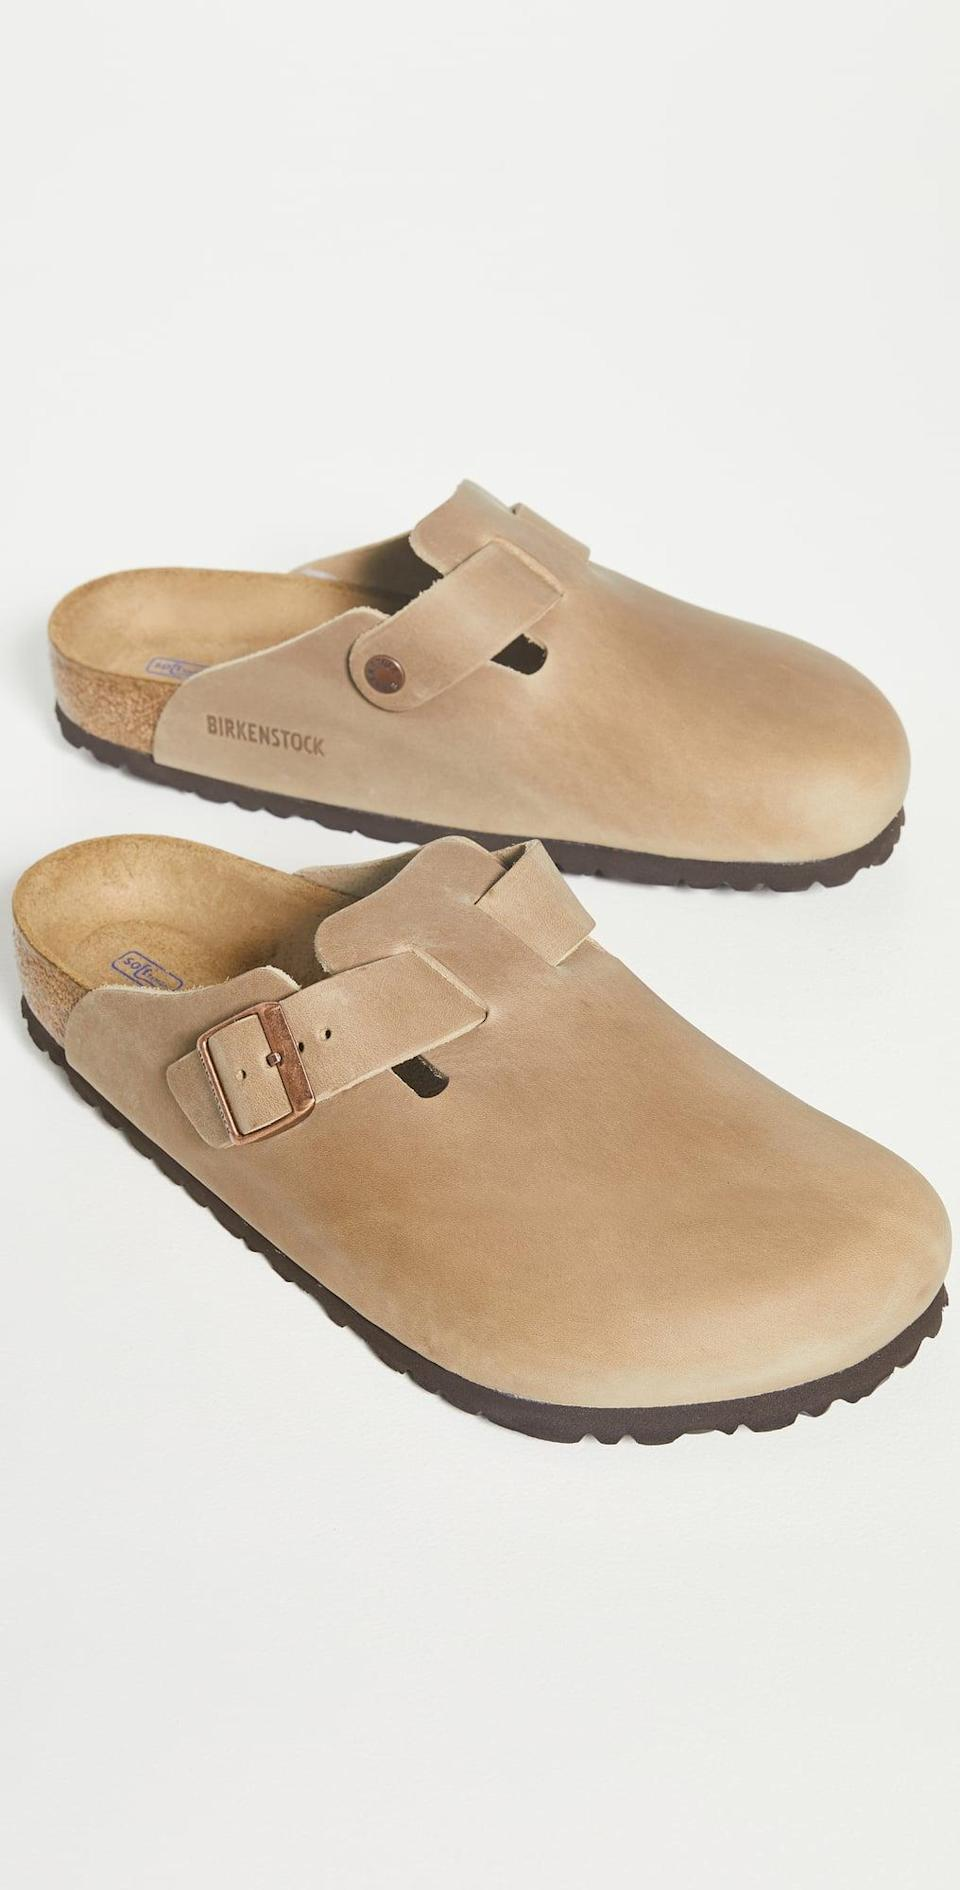 <p>Weekends will be spent in this <span>Birkenstock Boston Soft Footbed</span> ($145), which blends comfort and style pretty well. It also doesn't hurt that it's neutral, so you can pair it with practically any outfit.</p>